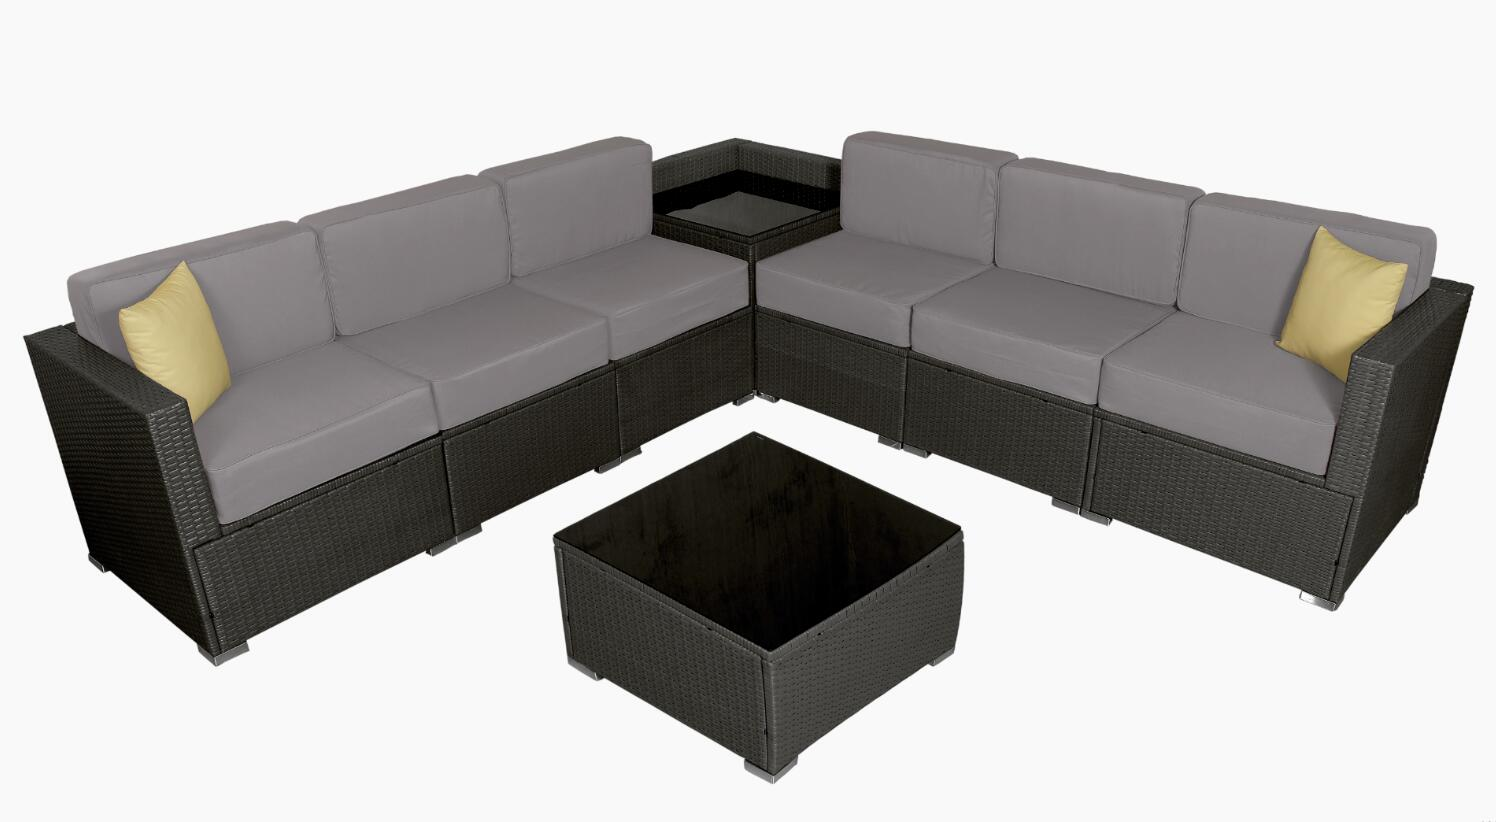 Mcombo 6082 8pc Ger Size Outdoor Furniture Luxury Patio With Black Wicker And Grey Cushion Cover